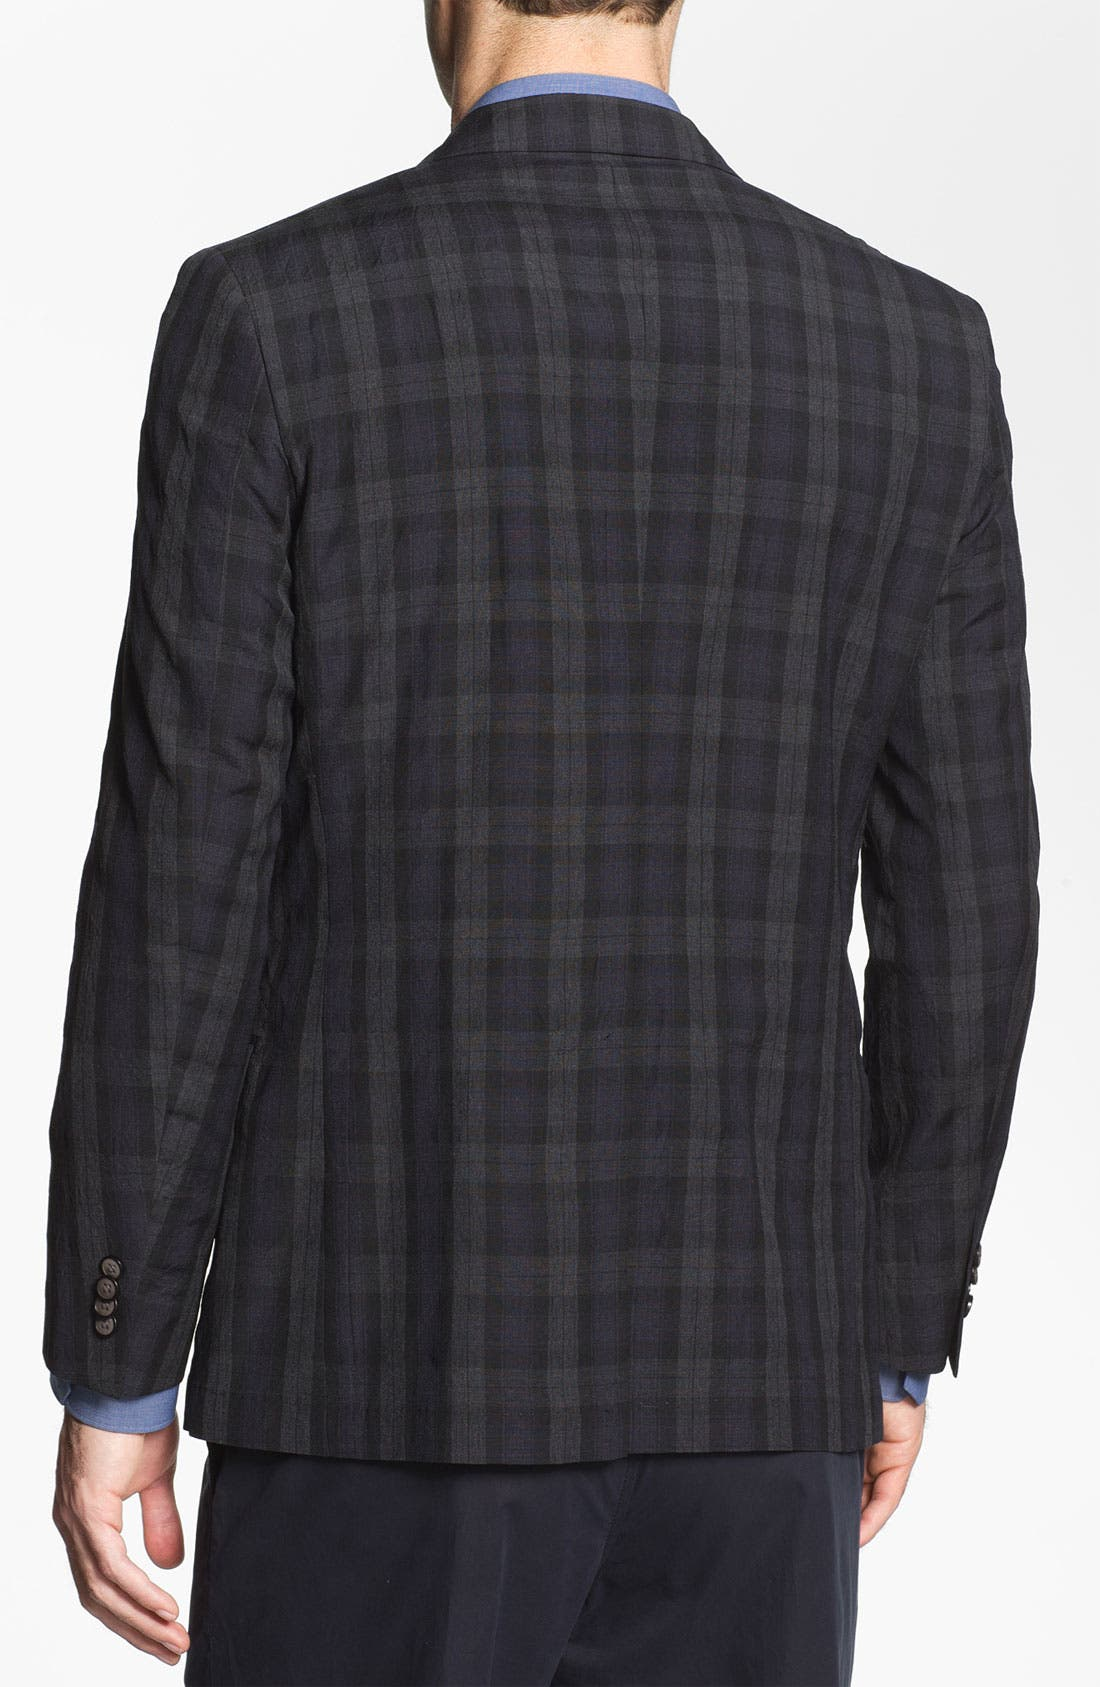 Alternate Image 2  - Michael Kors Trim Fit Plaid Wool Sportcoat